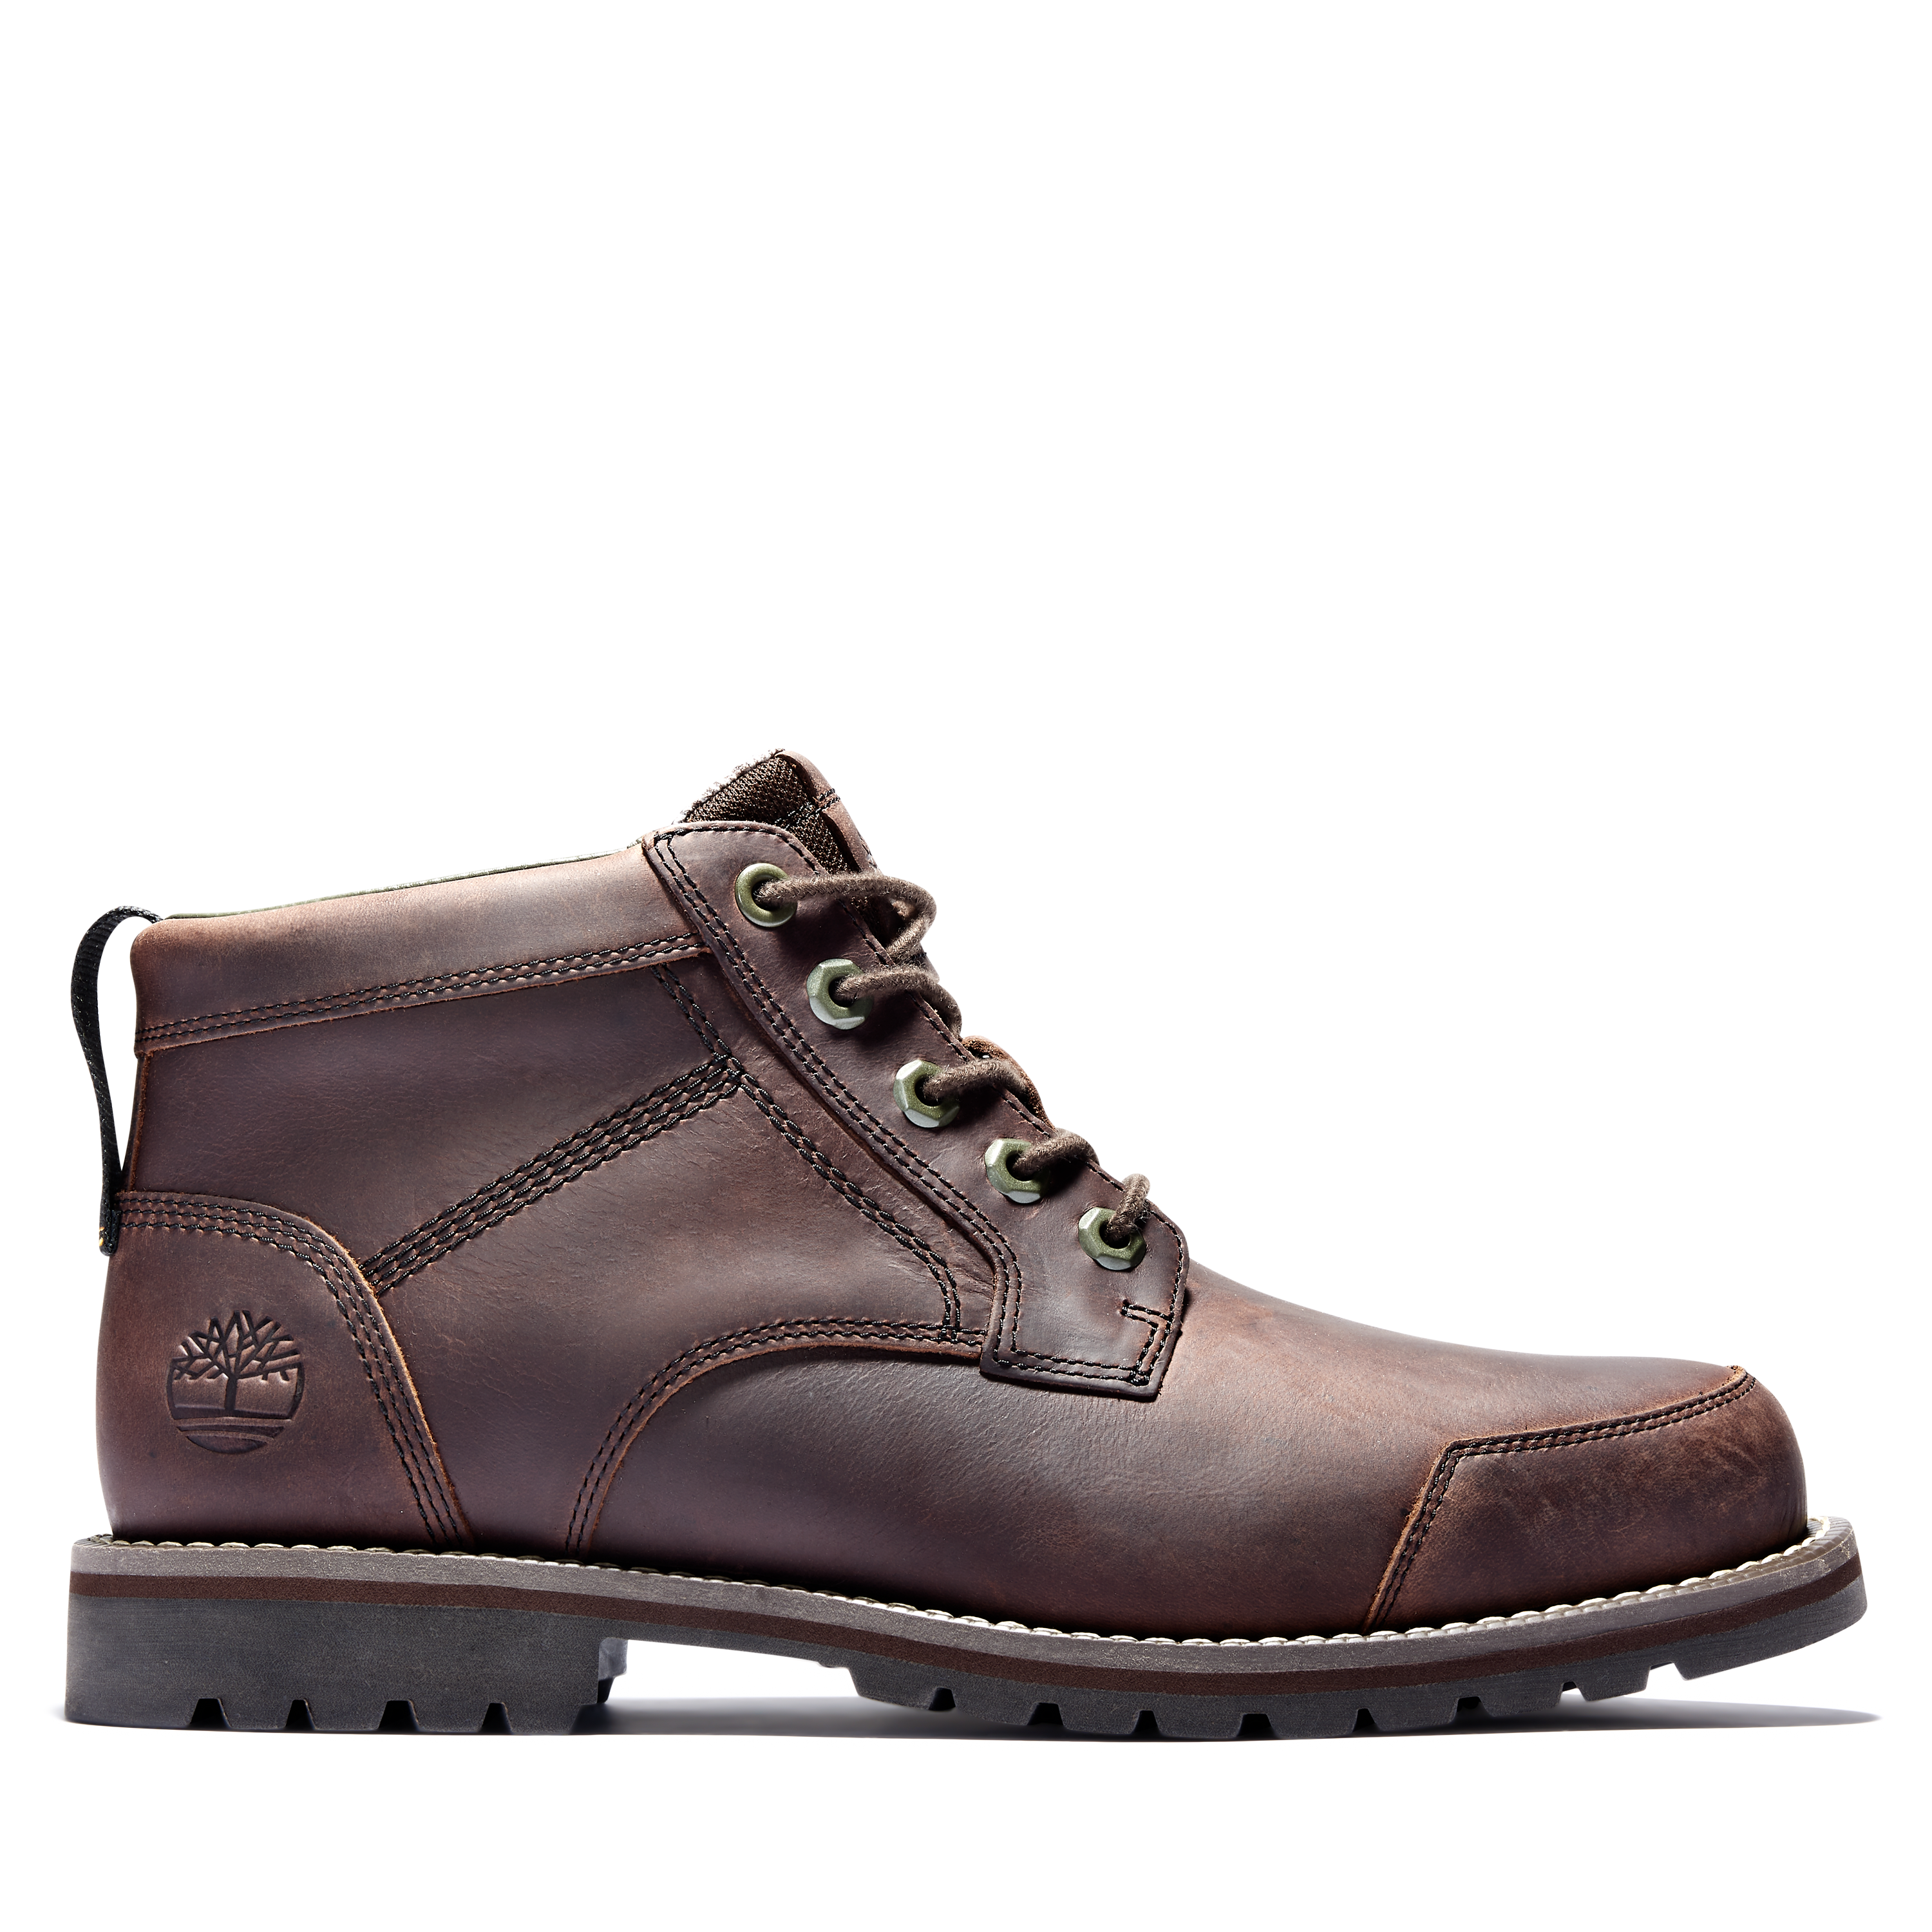 TIMBERLAND PVP 155EUROS_A2NGCV13-hero_LITE_LEATHER